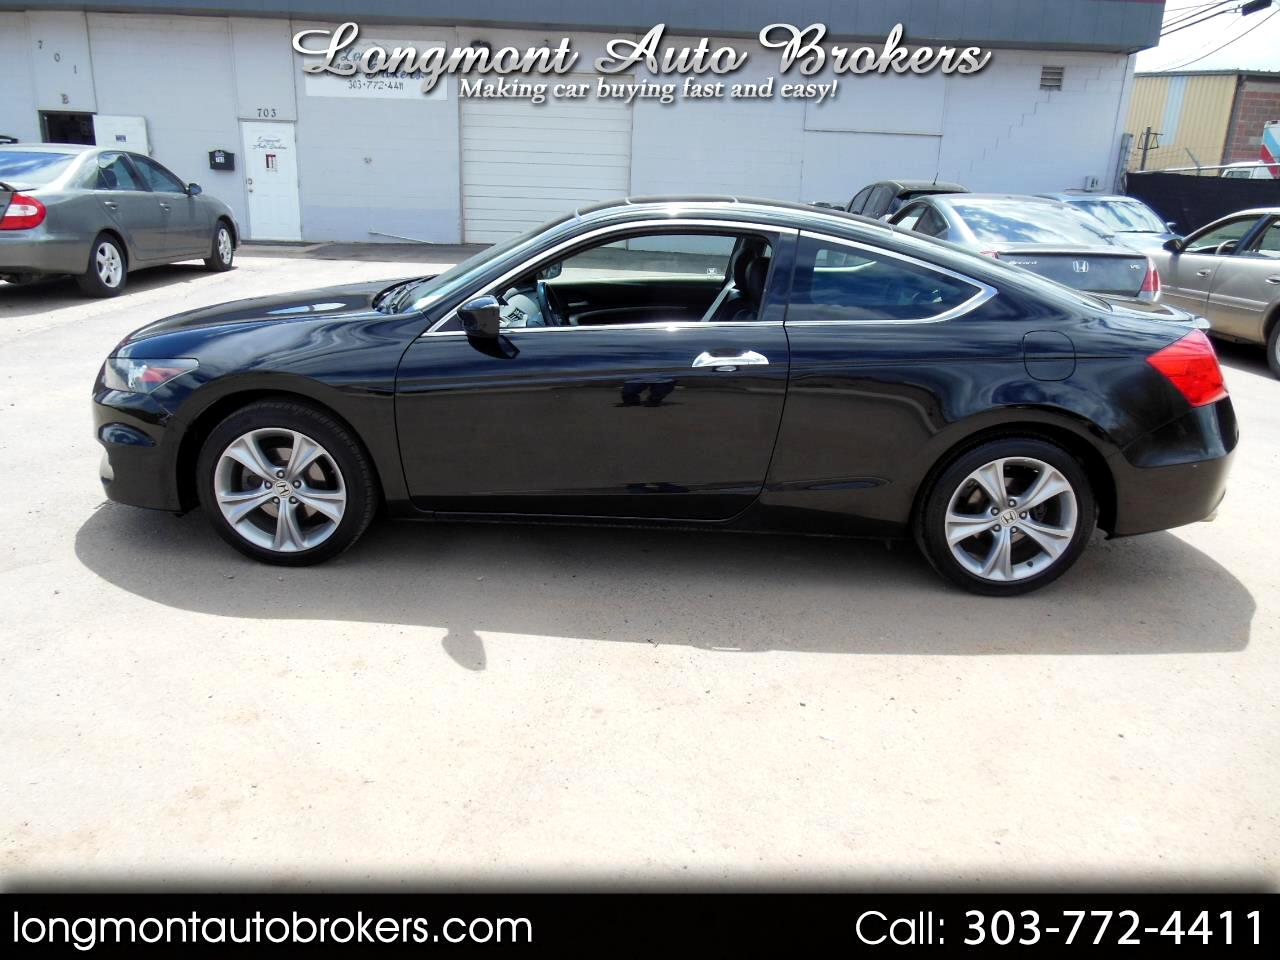 2012 Honda Accord Cpe 2dr V6 Man EX-L